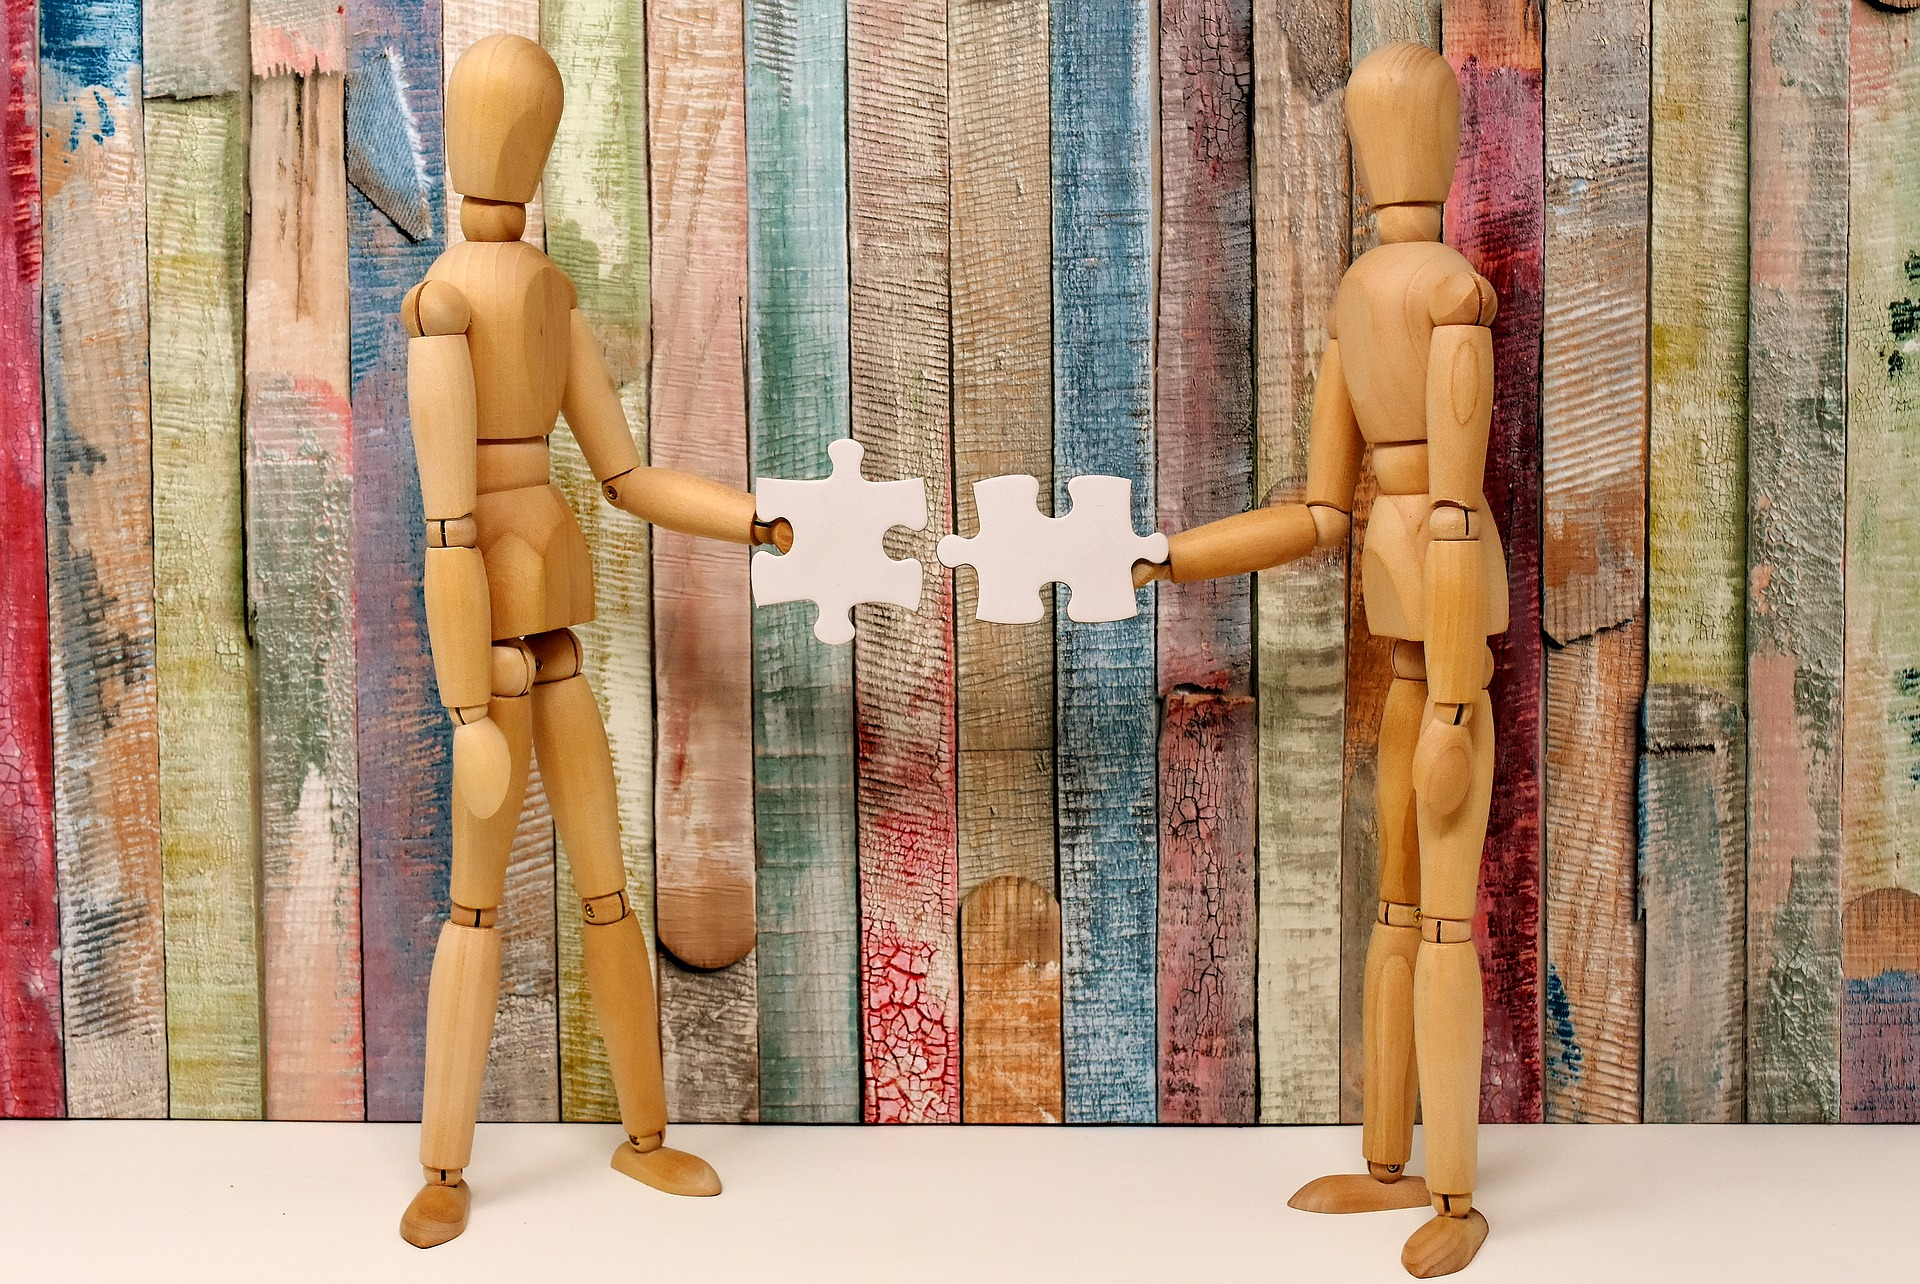 Two wooden drawing models standing in front of coloured panel fencing made of paddle pop sticks each holdig a piece of a puzzle and coming together